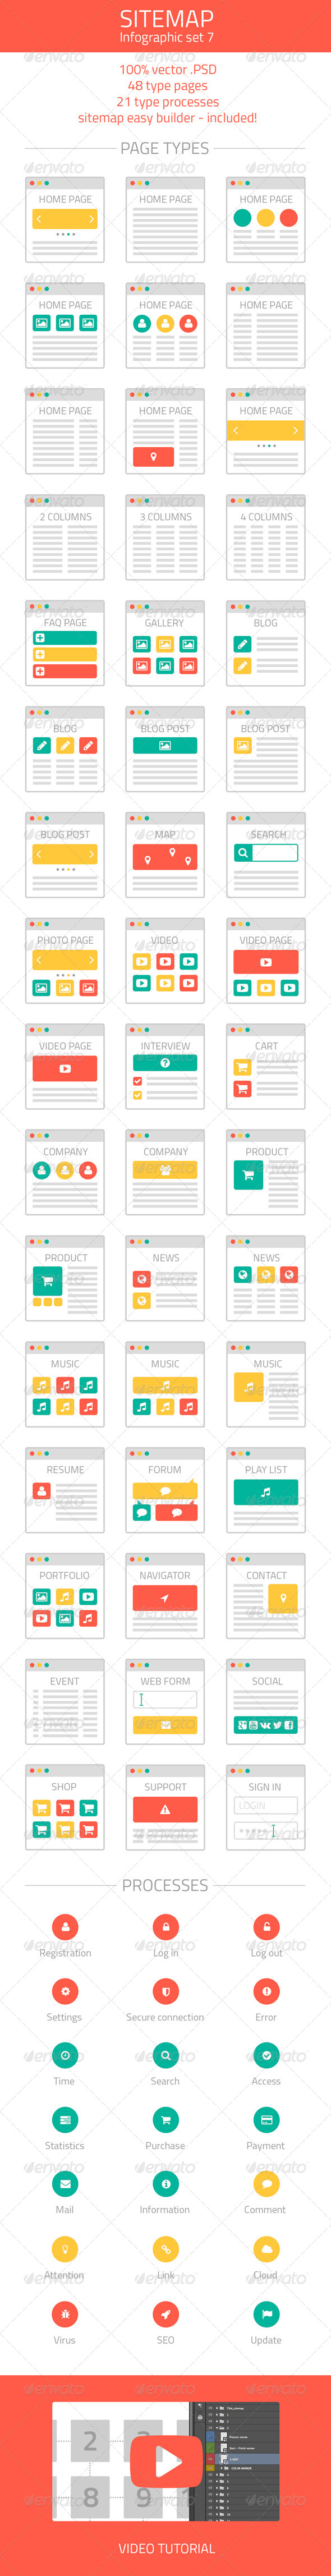 GraphicRiver Sitemap builder 7907106